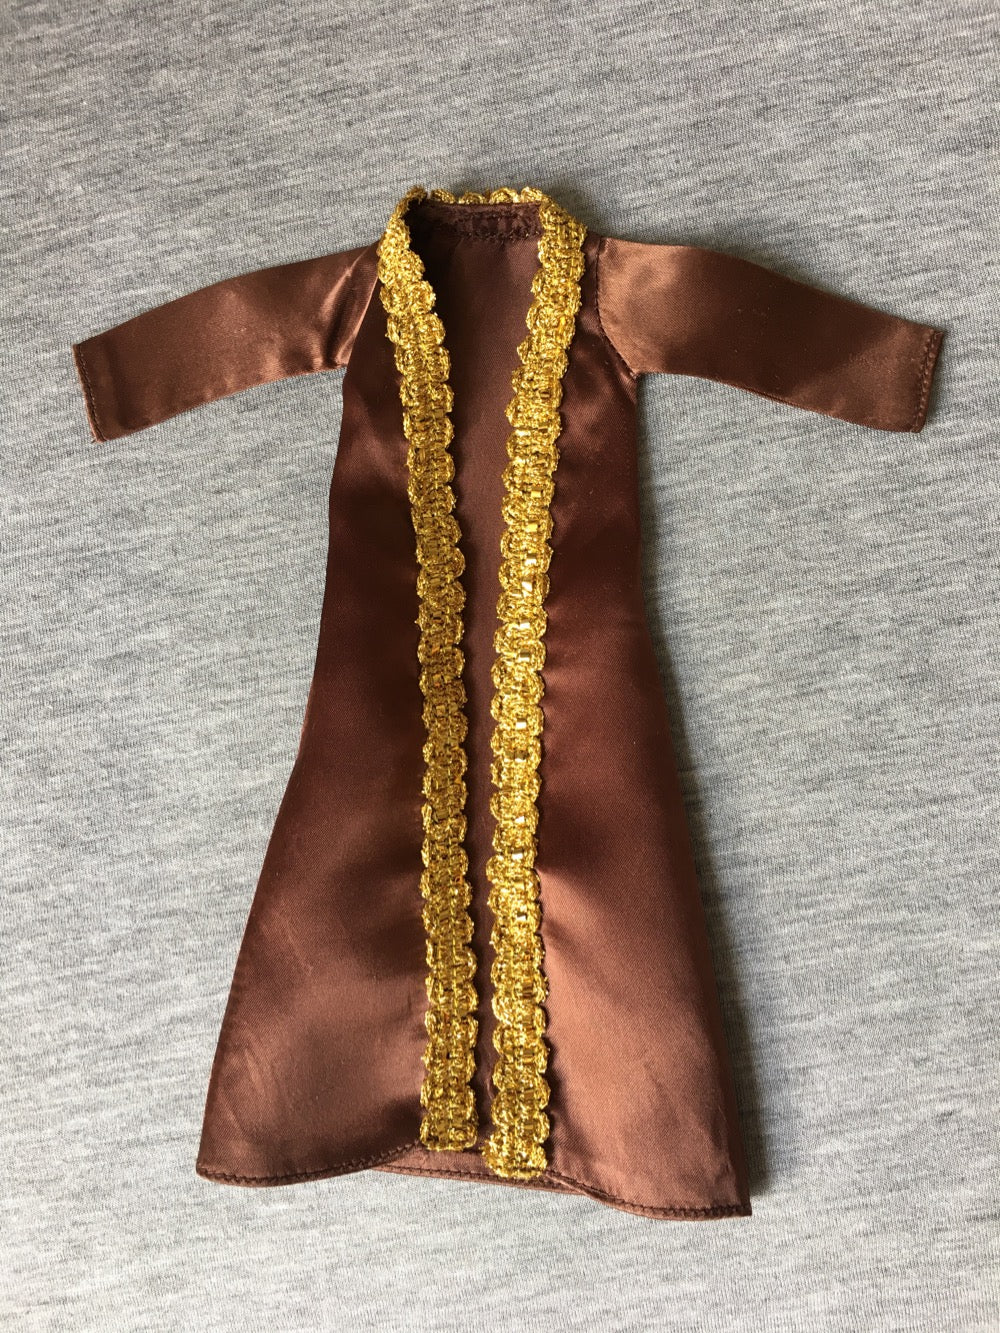 Sindy Night Spot coat 1977 brown satin gold brocade Pedigree 44305